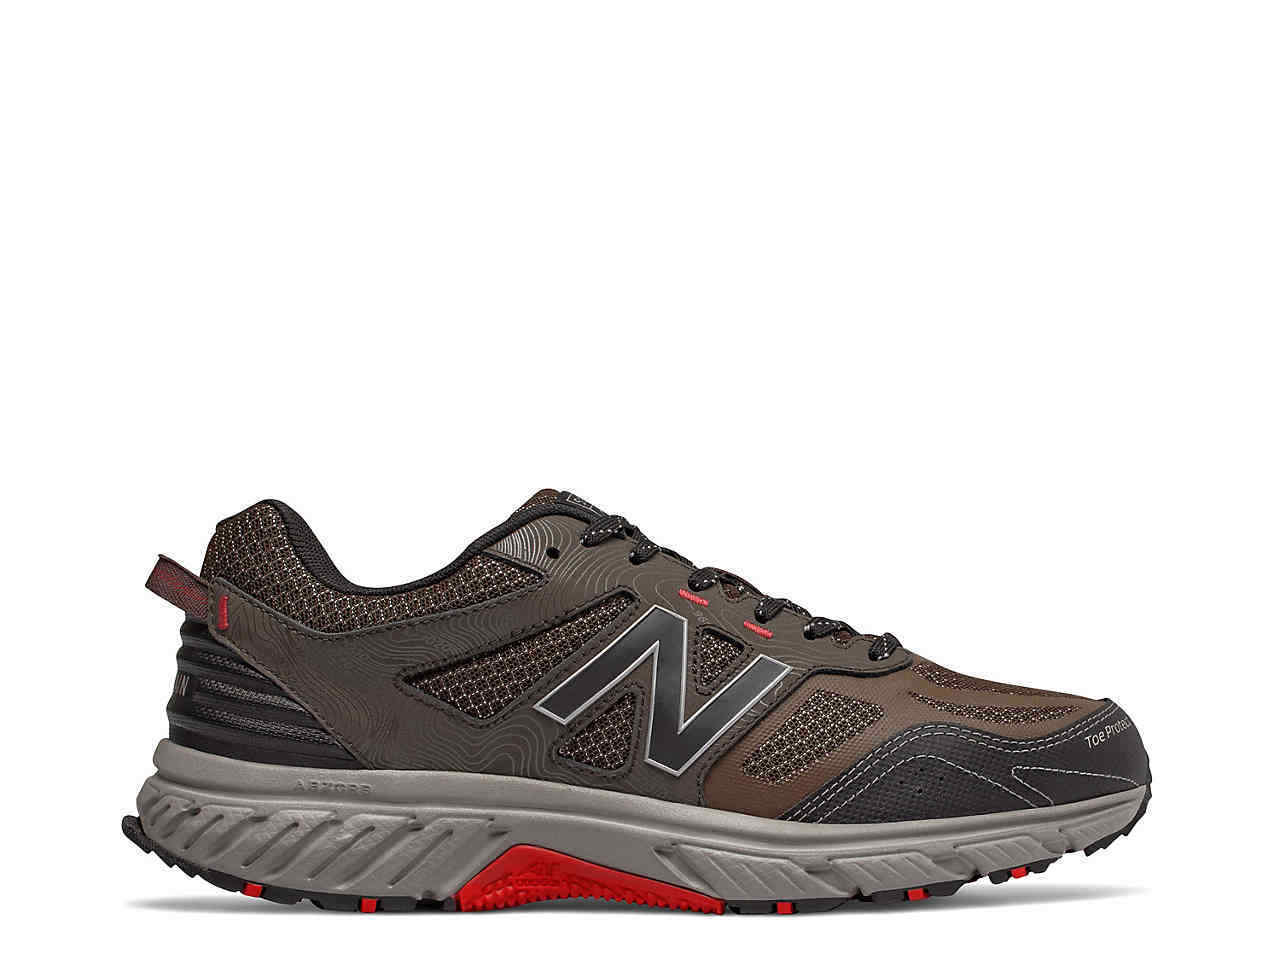 New Balance Uomo Uomo Uomo 510 TRAIL Running scarpe Chocolate MT510CC4 c e9b40e